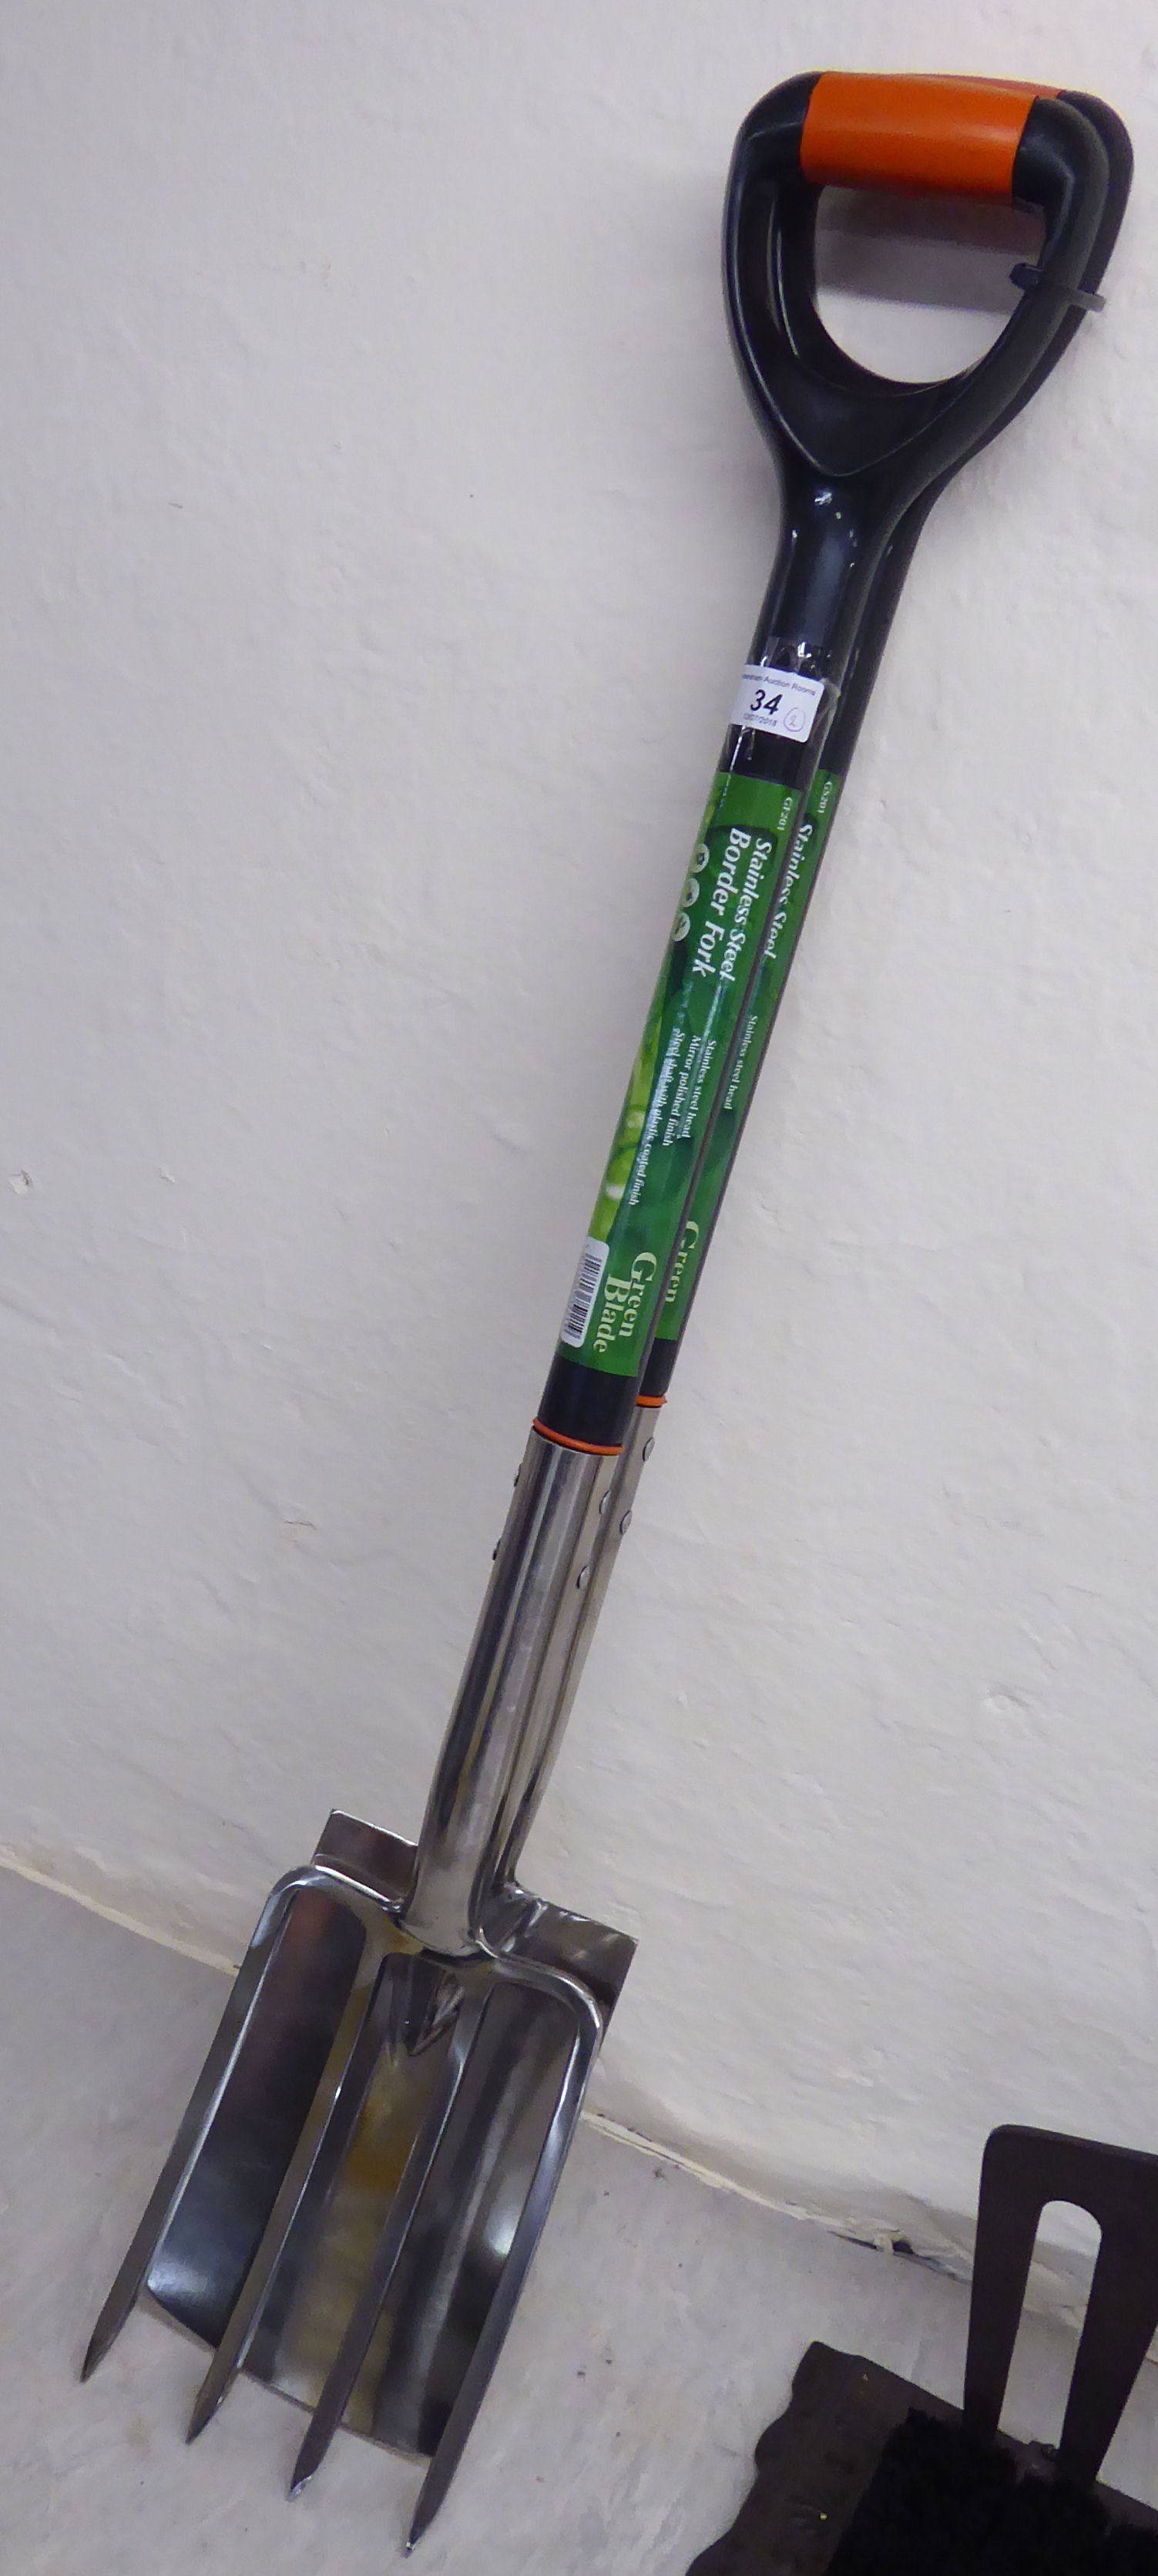 Lot 34 - A Green Blade stainless steel garden fork and spade BSR